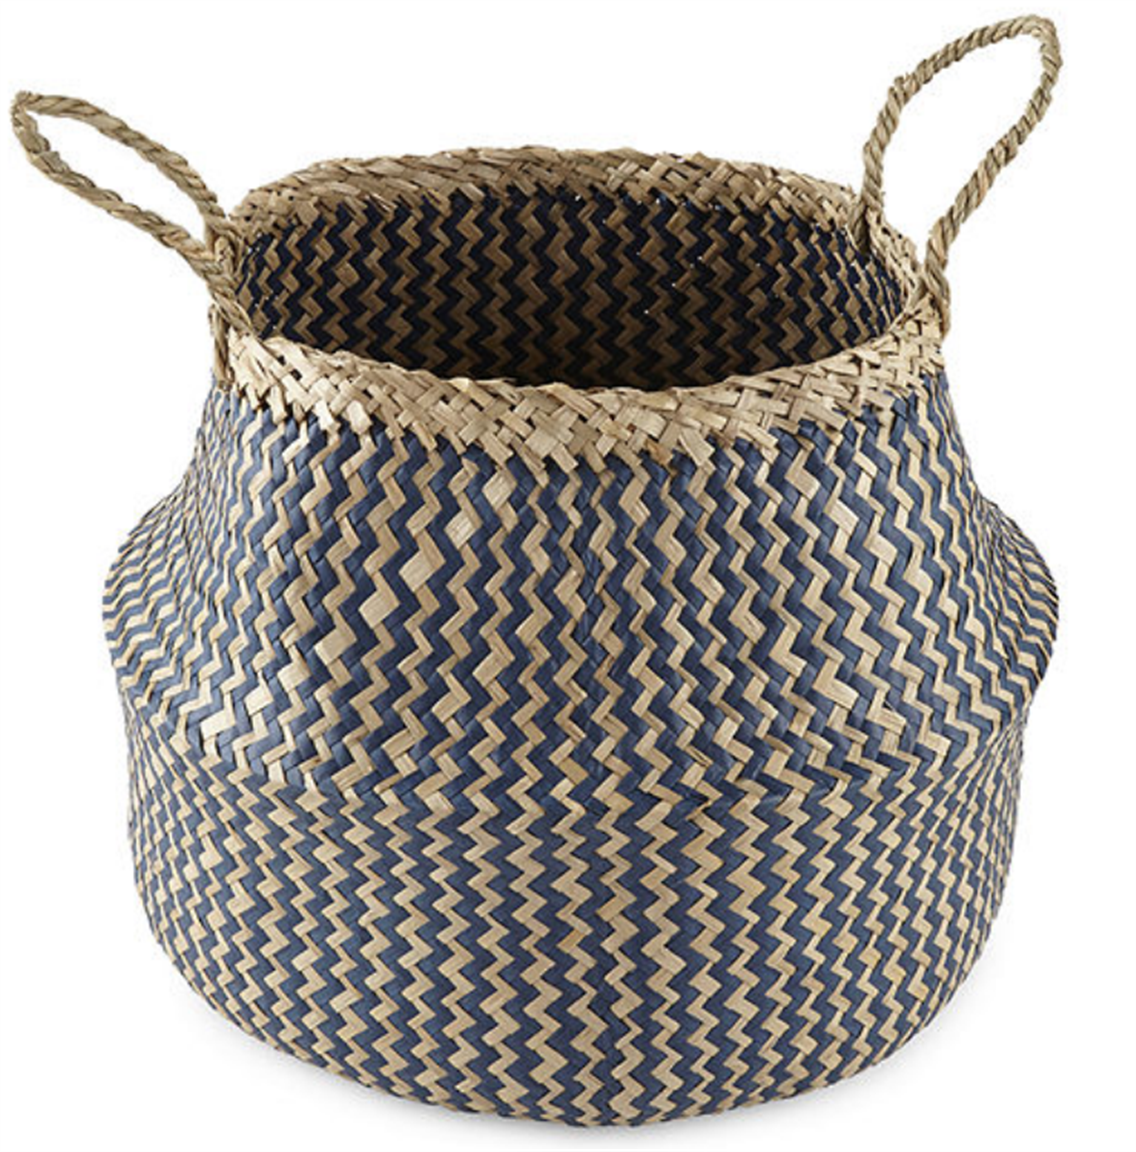 JCPenney.com – Up To 25% ALL Orders – Medium Navy Basket Only $19.19, Reg $40 + Free Store Pickup!